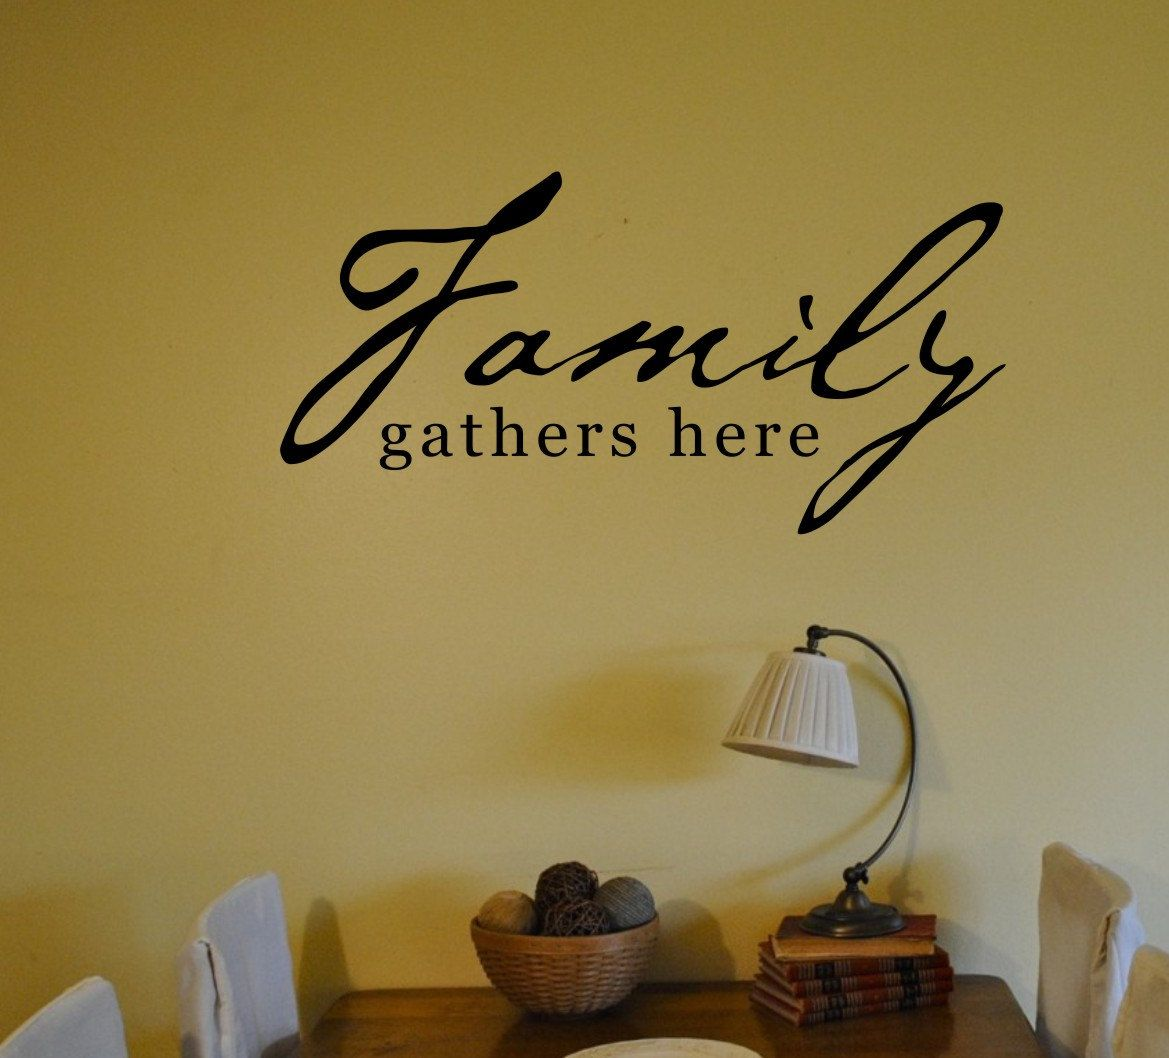 Family Gathers Here Wall Decal Wall Vinyl Decal Custom Wall Etsy Vinyl Wall Decals Custom Vinyl Wall Decals Custom Wall Quotes